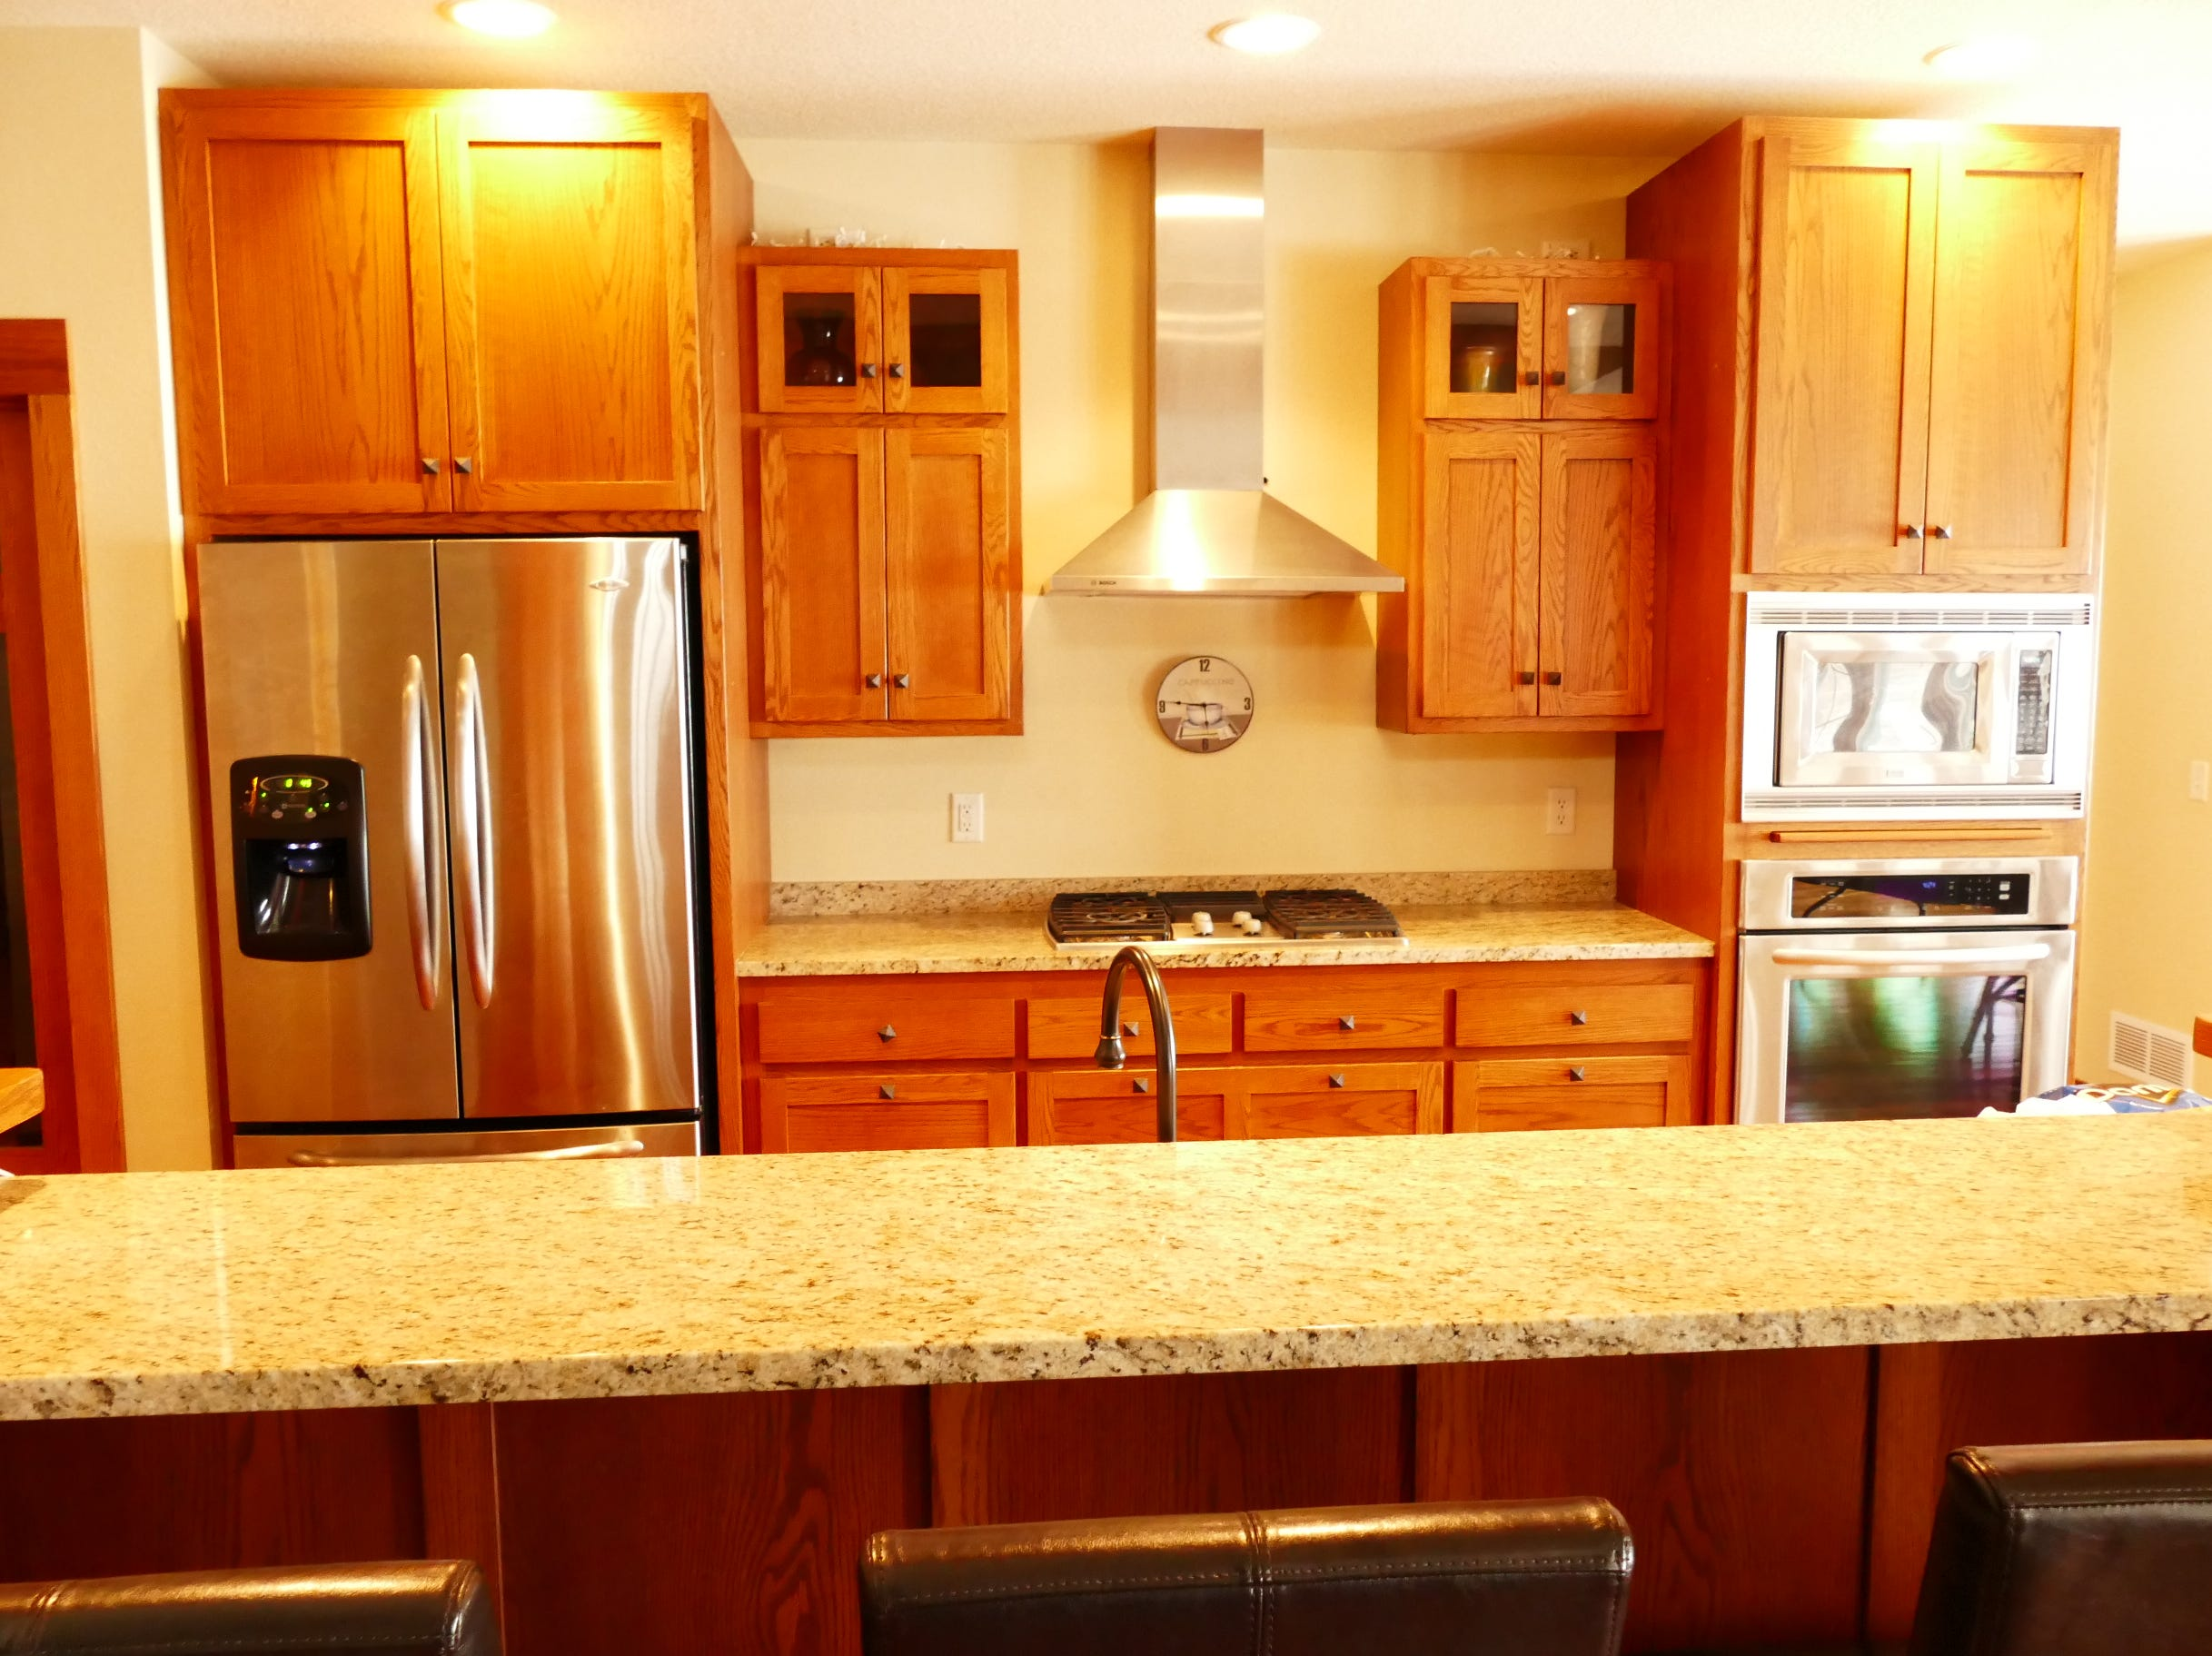 The kitchen includes a built-in coffee bar/buffet area as well as a large pantry and plenty of cupboard storage.